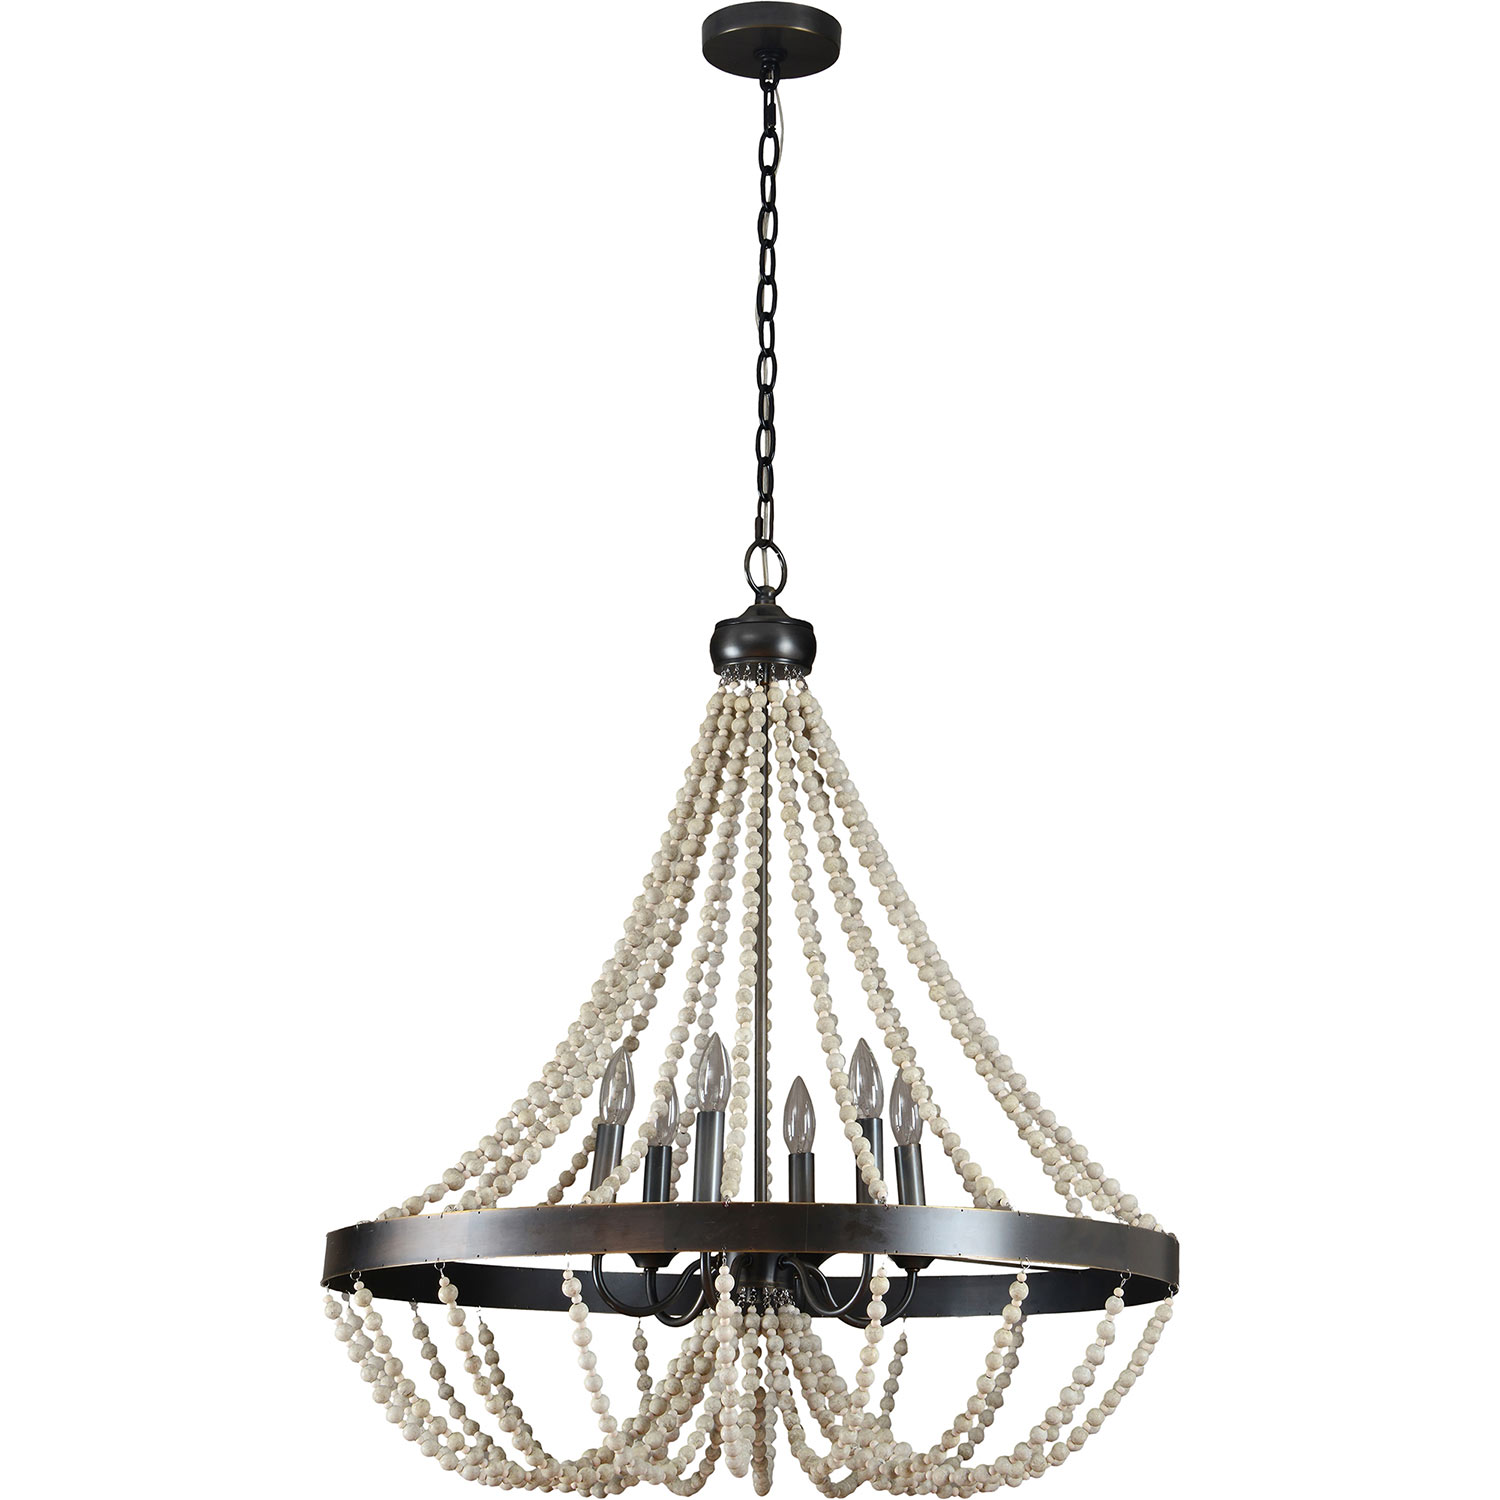 Ren-Wil Iona Ceiling Fixture - Oil Rubbed Bronze